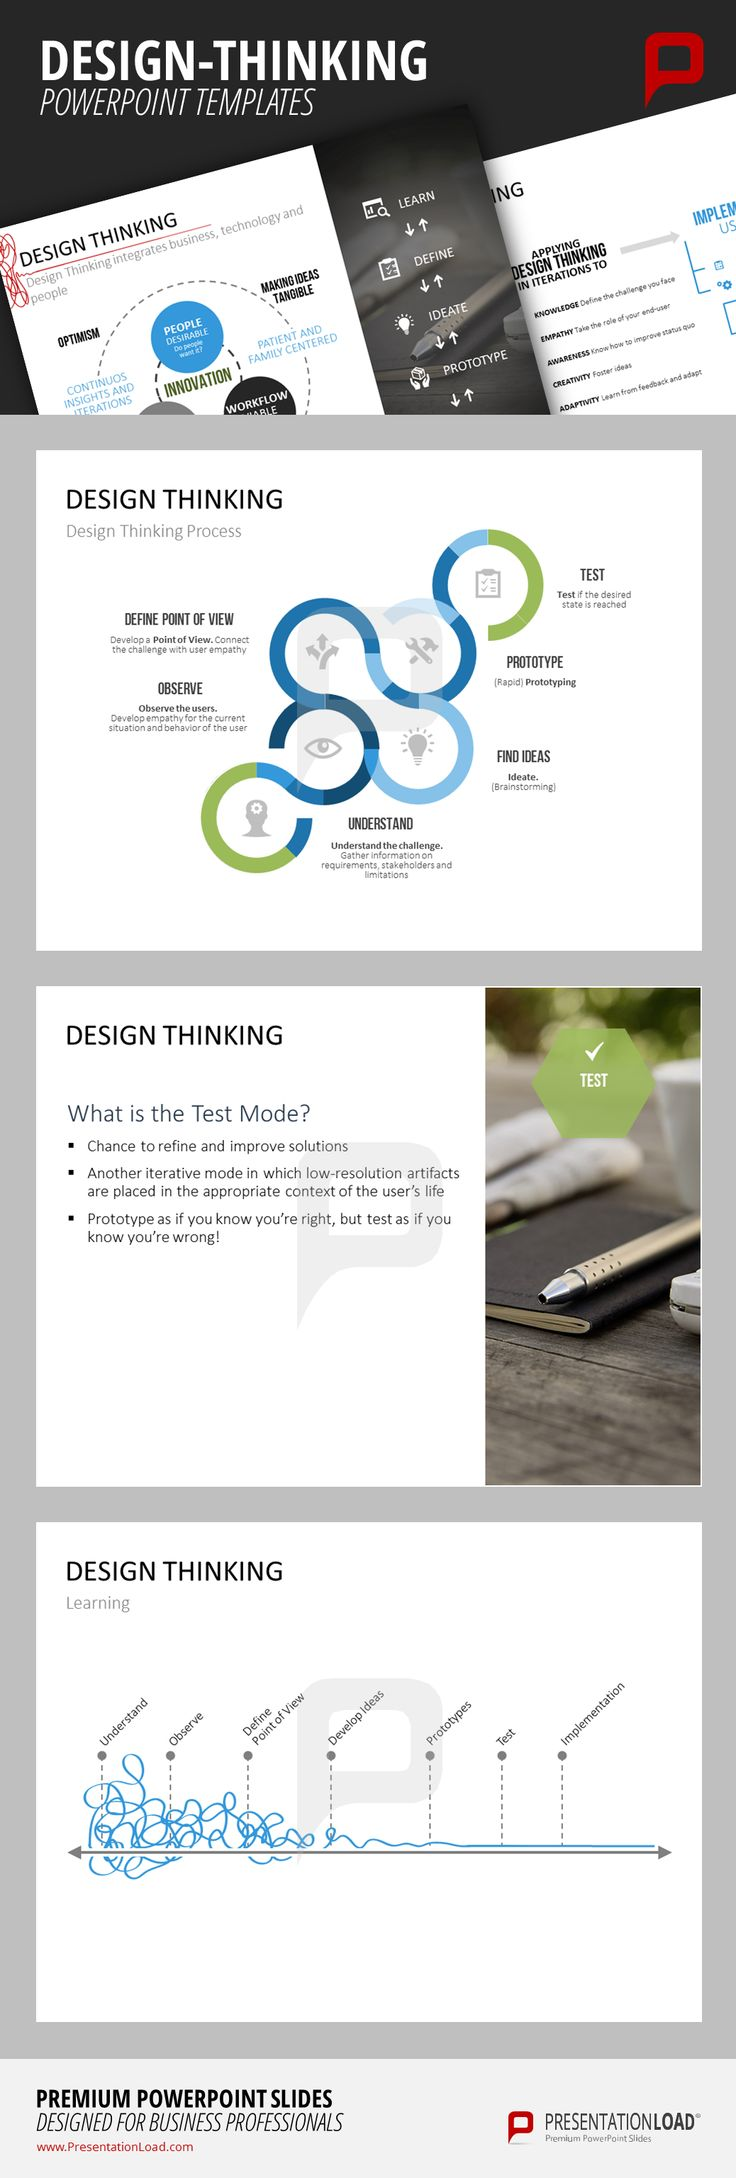 57 best design thinking powerpoint templates images on for Innovative product ideas not yet invented